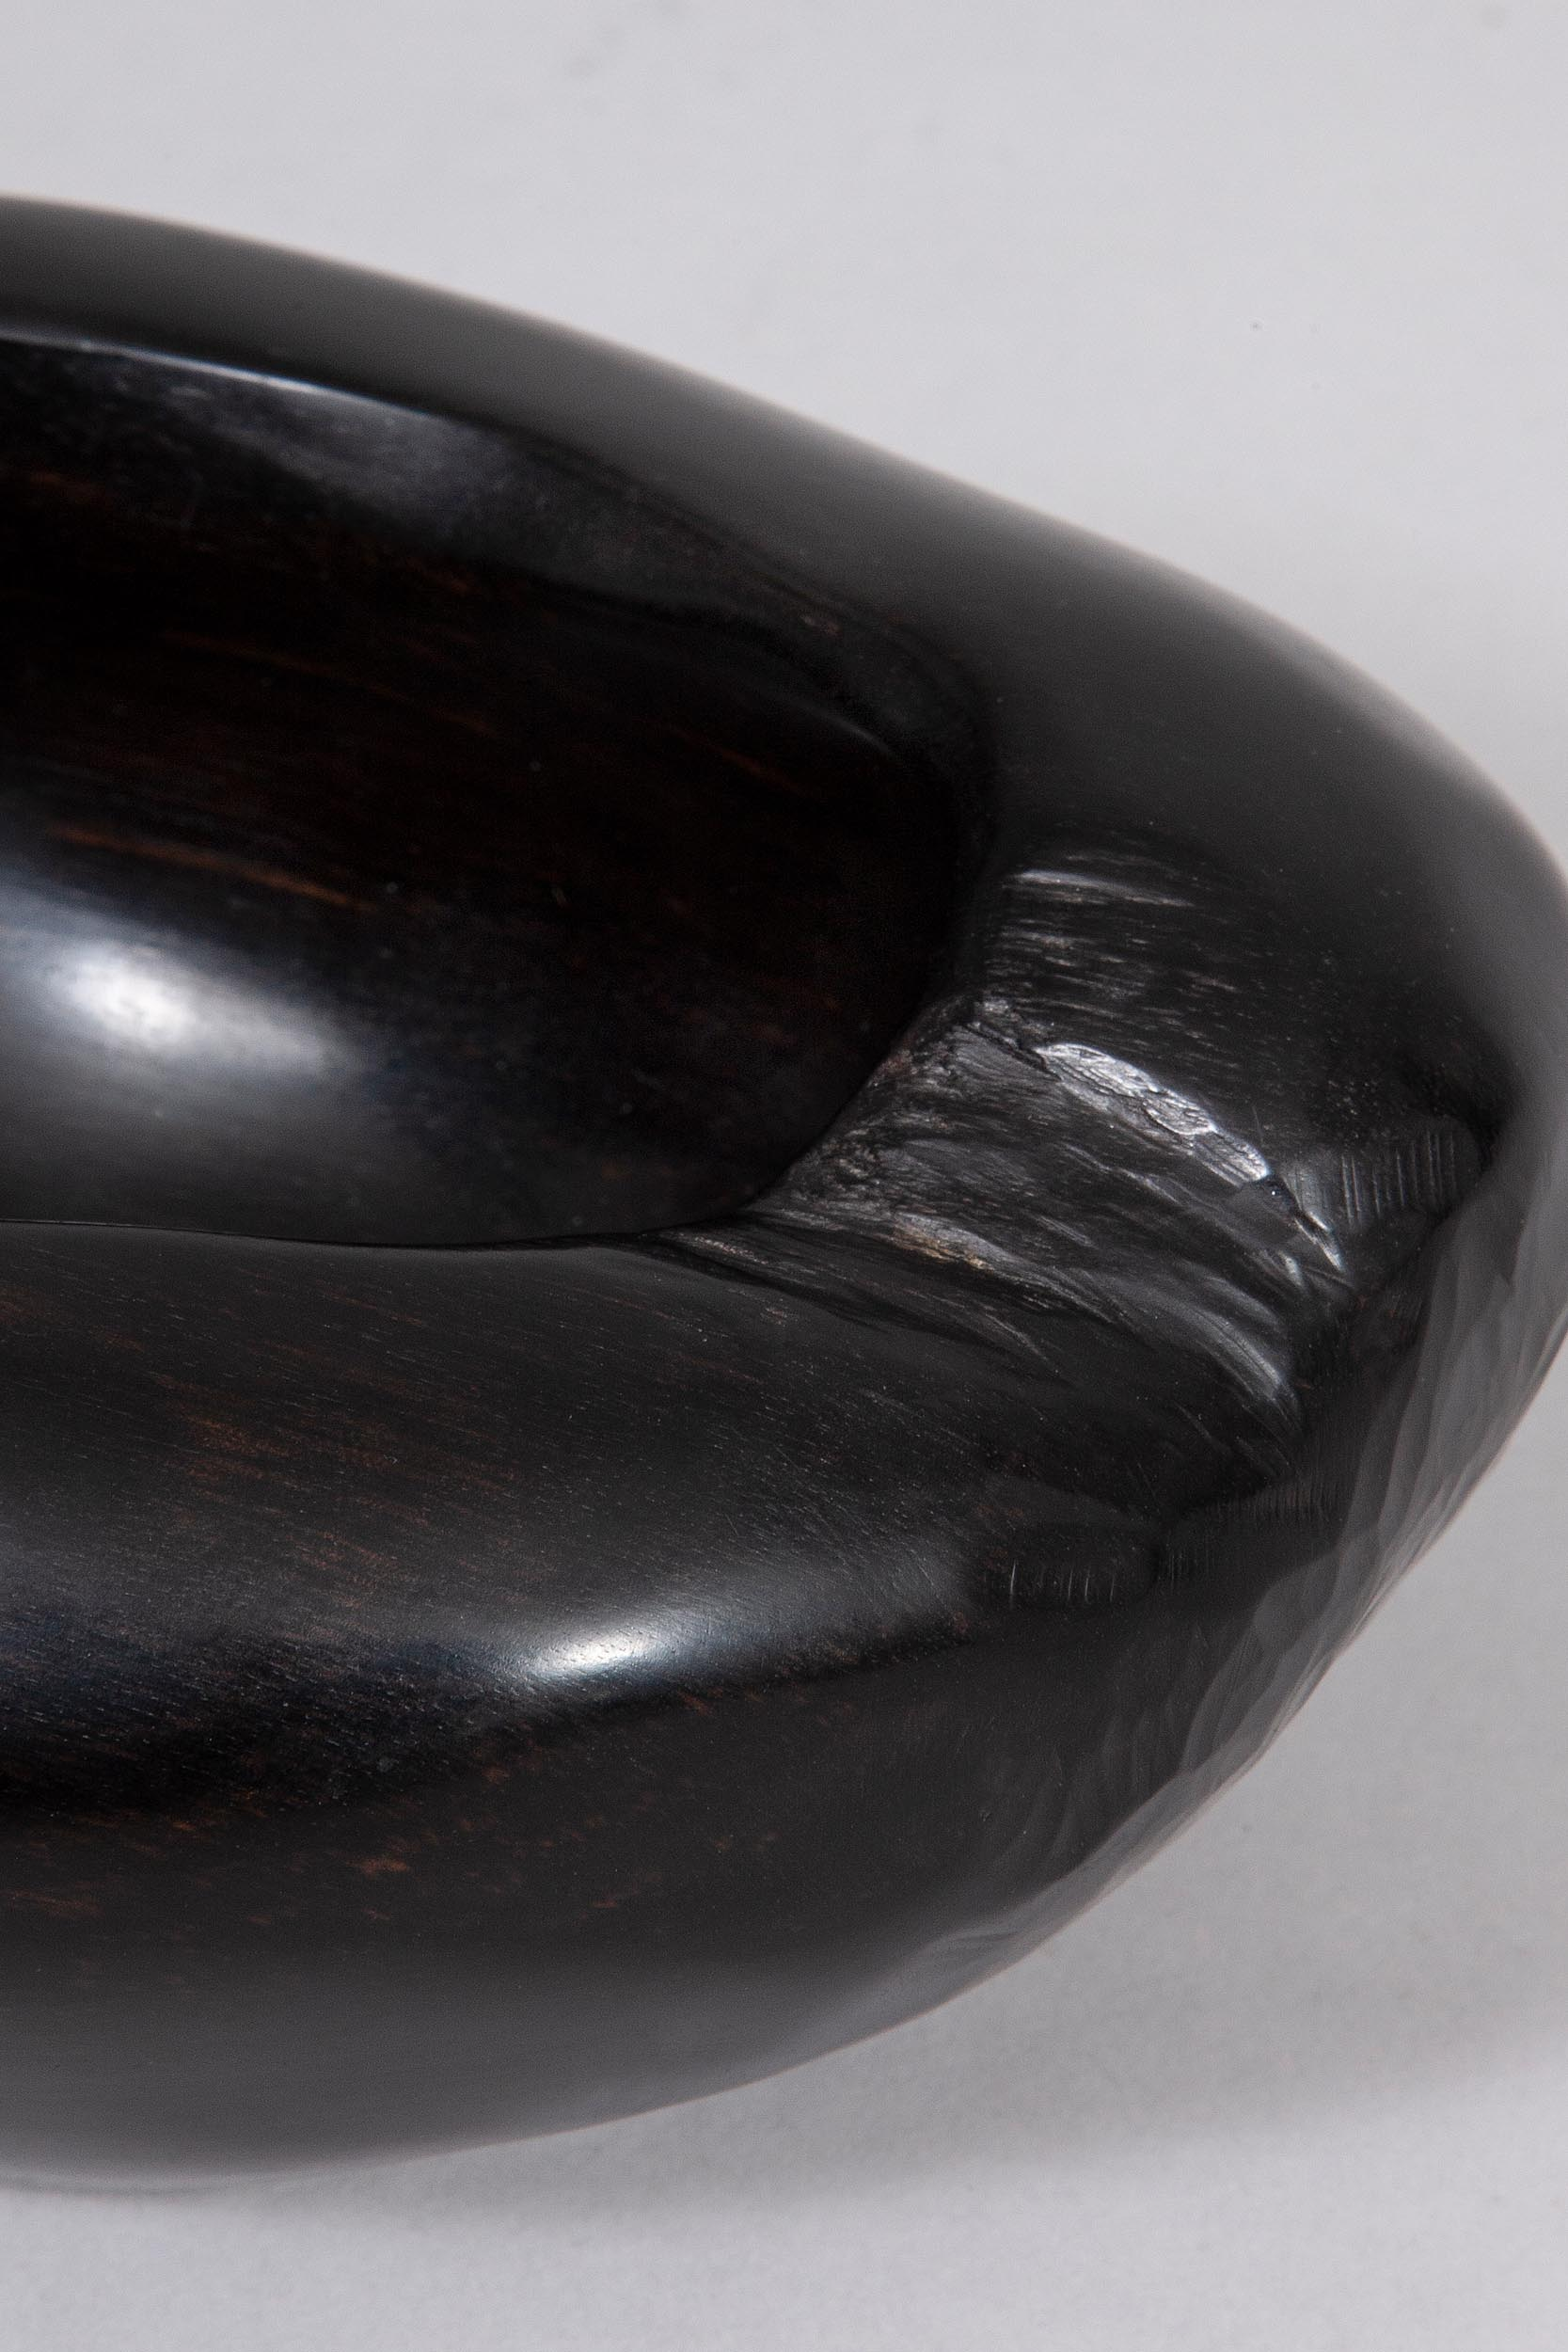 Alexandre Noll black bowl